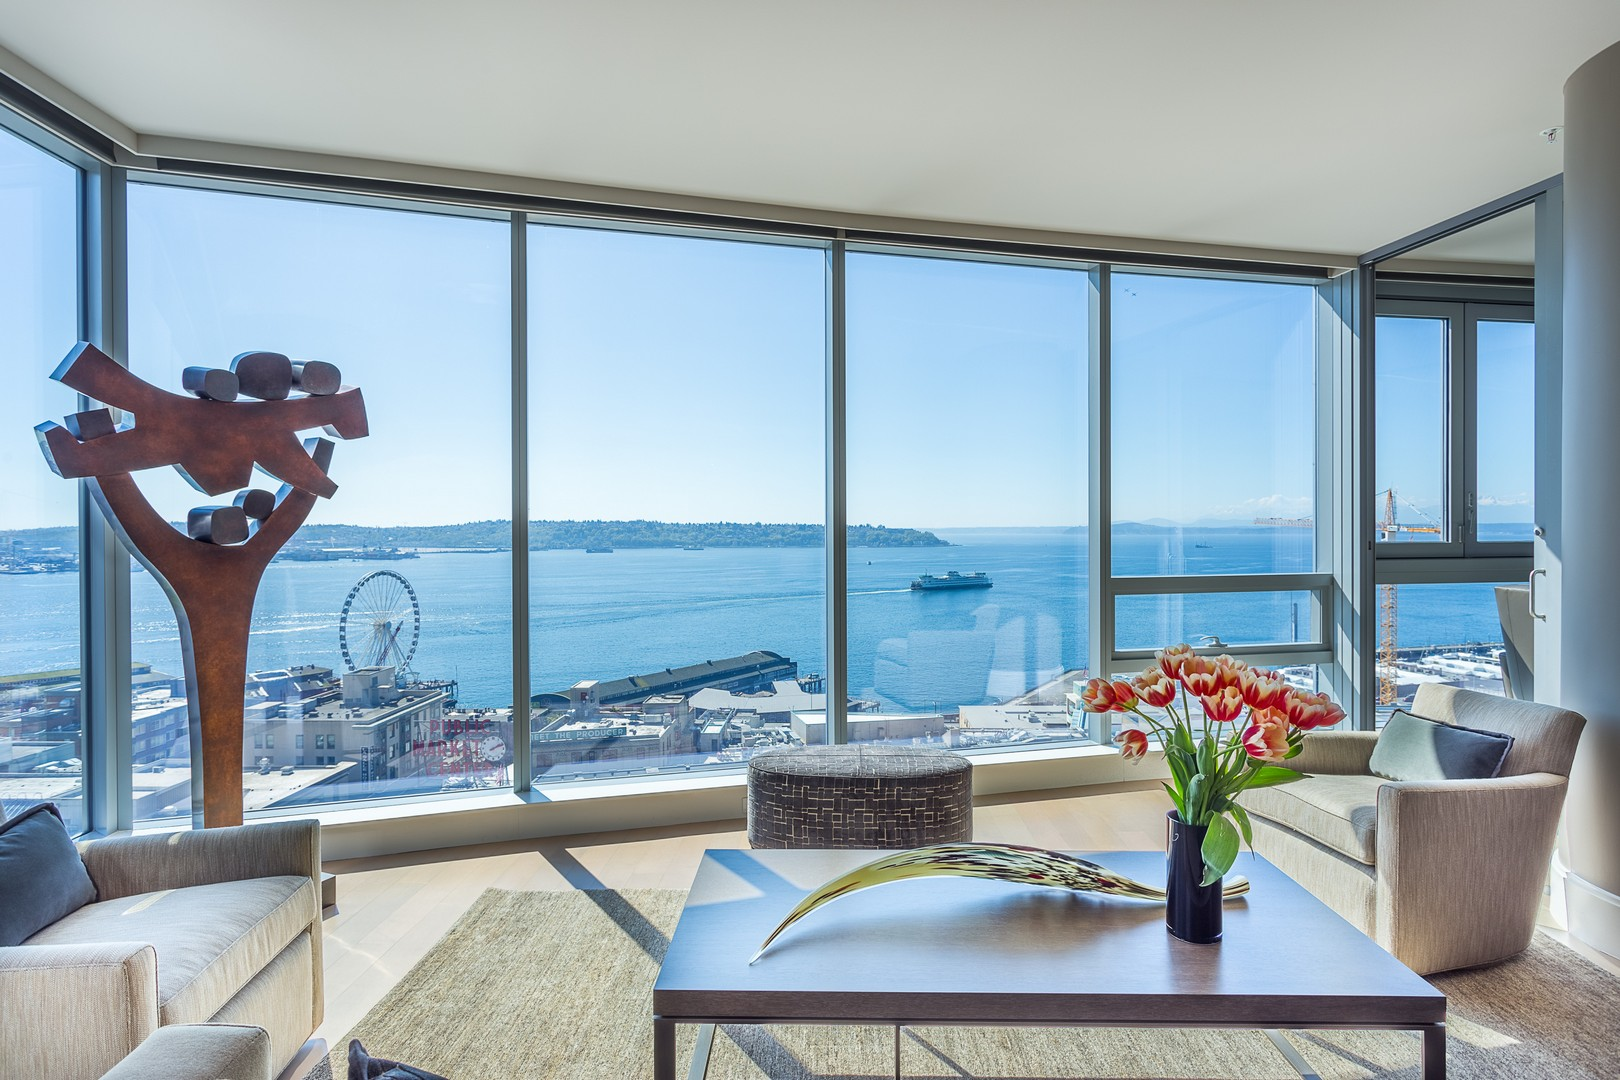 Condominium for Sale at 1521 2nd Avenue 1521 2nd Ave #1103 Downtown, Seattle, Washington, 98101 United States